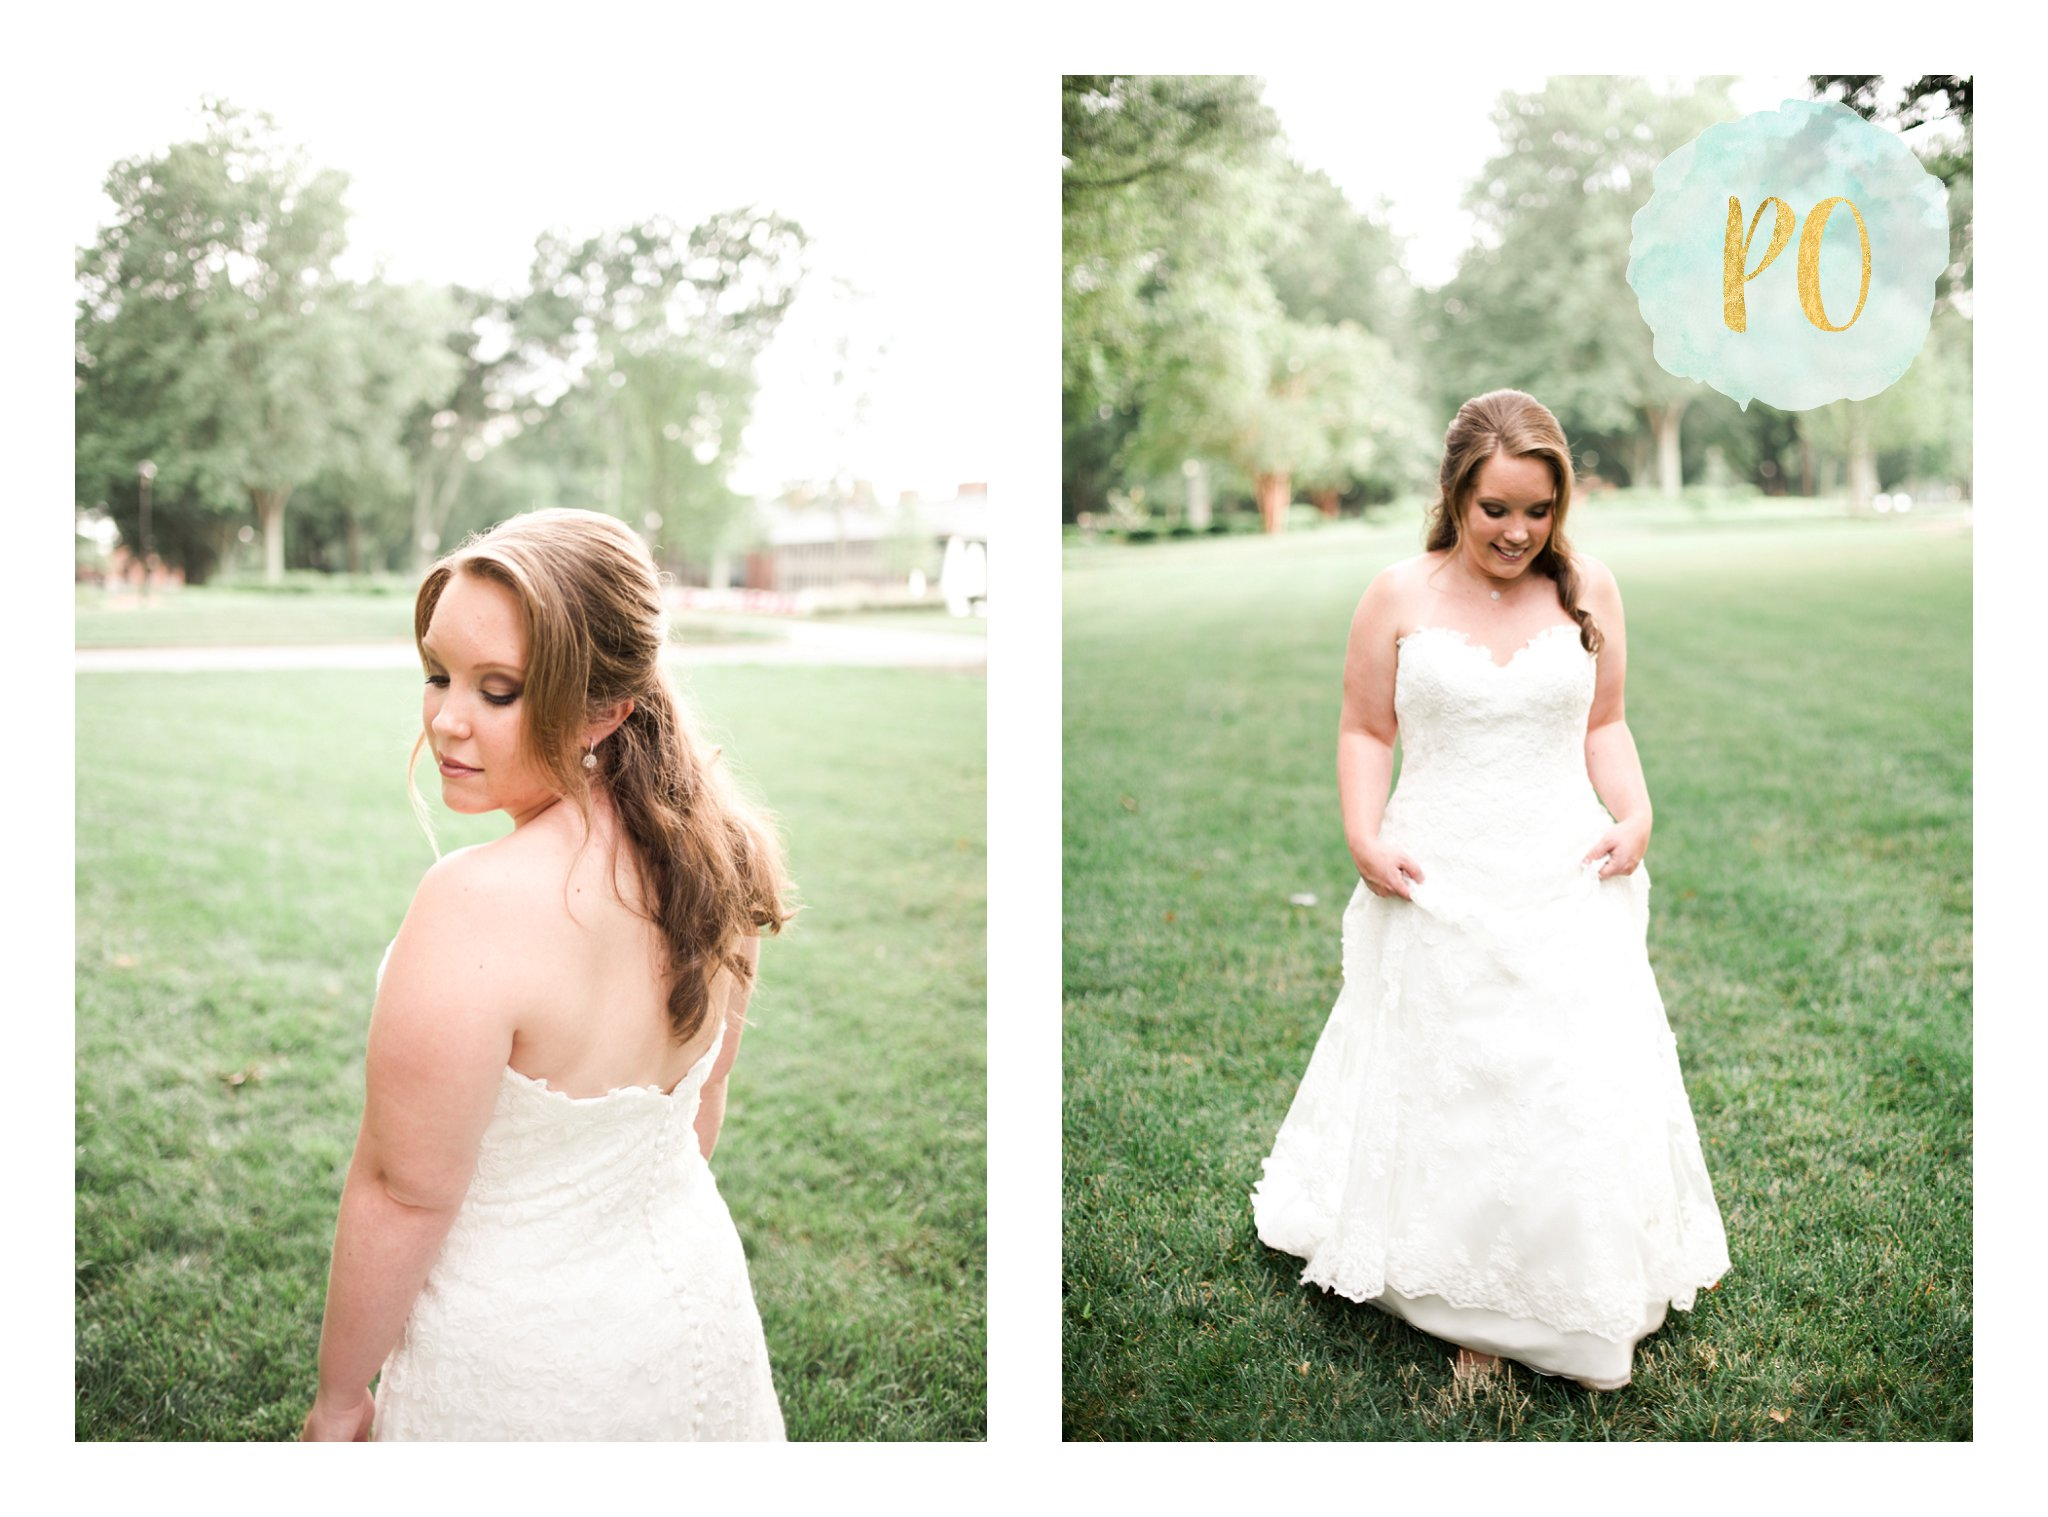 furman-bridal-portrait-greenvile-sc-photos_0010.jpg